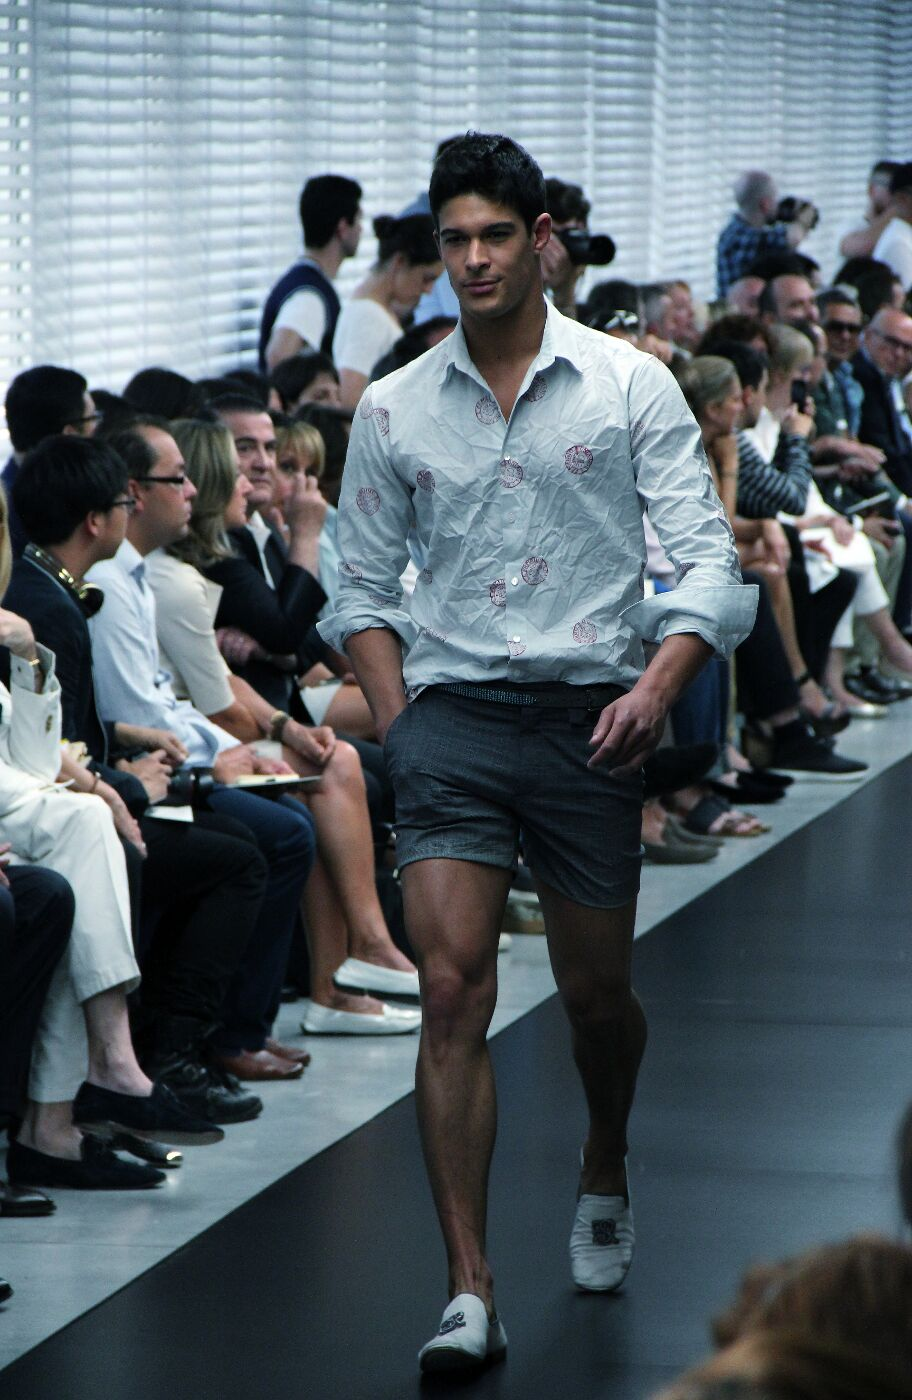 ermanno-scervino-spring-summer-2012-men-collection-milano-fashion-week-2012-ermanno-scervino-fashion-show-catwalk